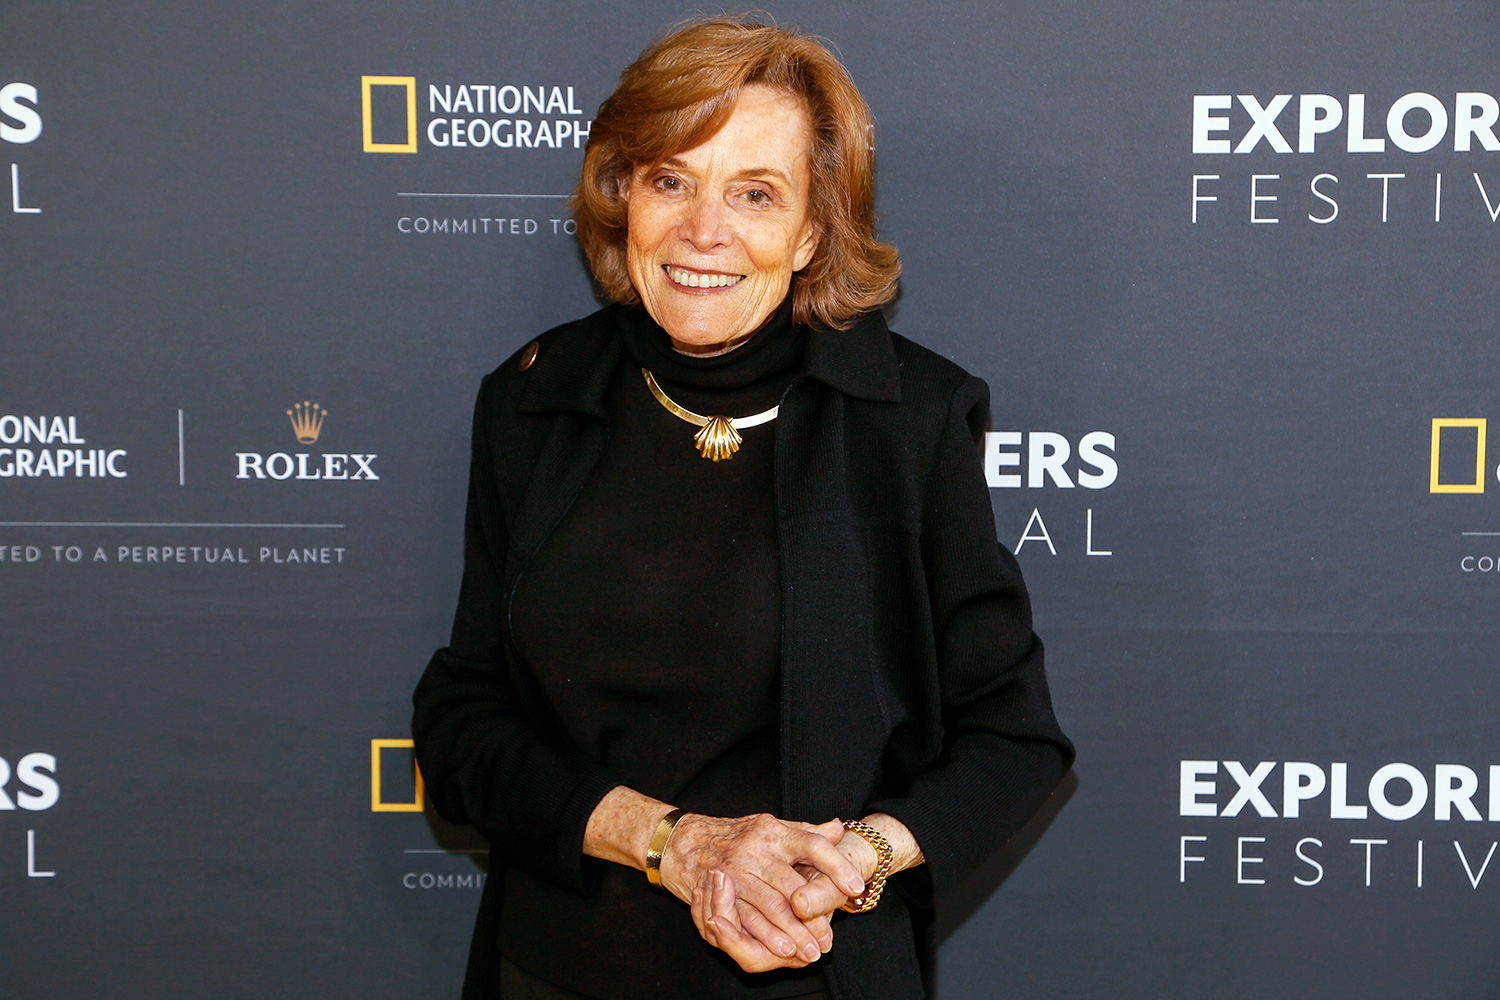 National Geographic Explorer-at-Large Sylvia Earle attends the National Geographic Awards on Wednesday, June 12, 2019, at Lisner Auditorium in Washington, D.C.